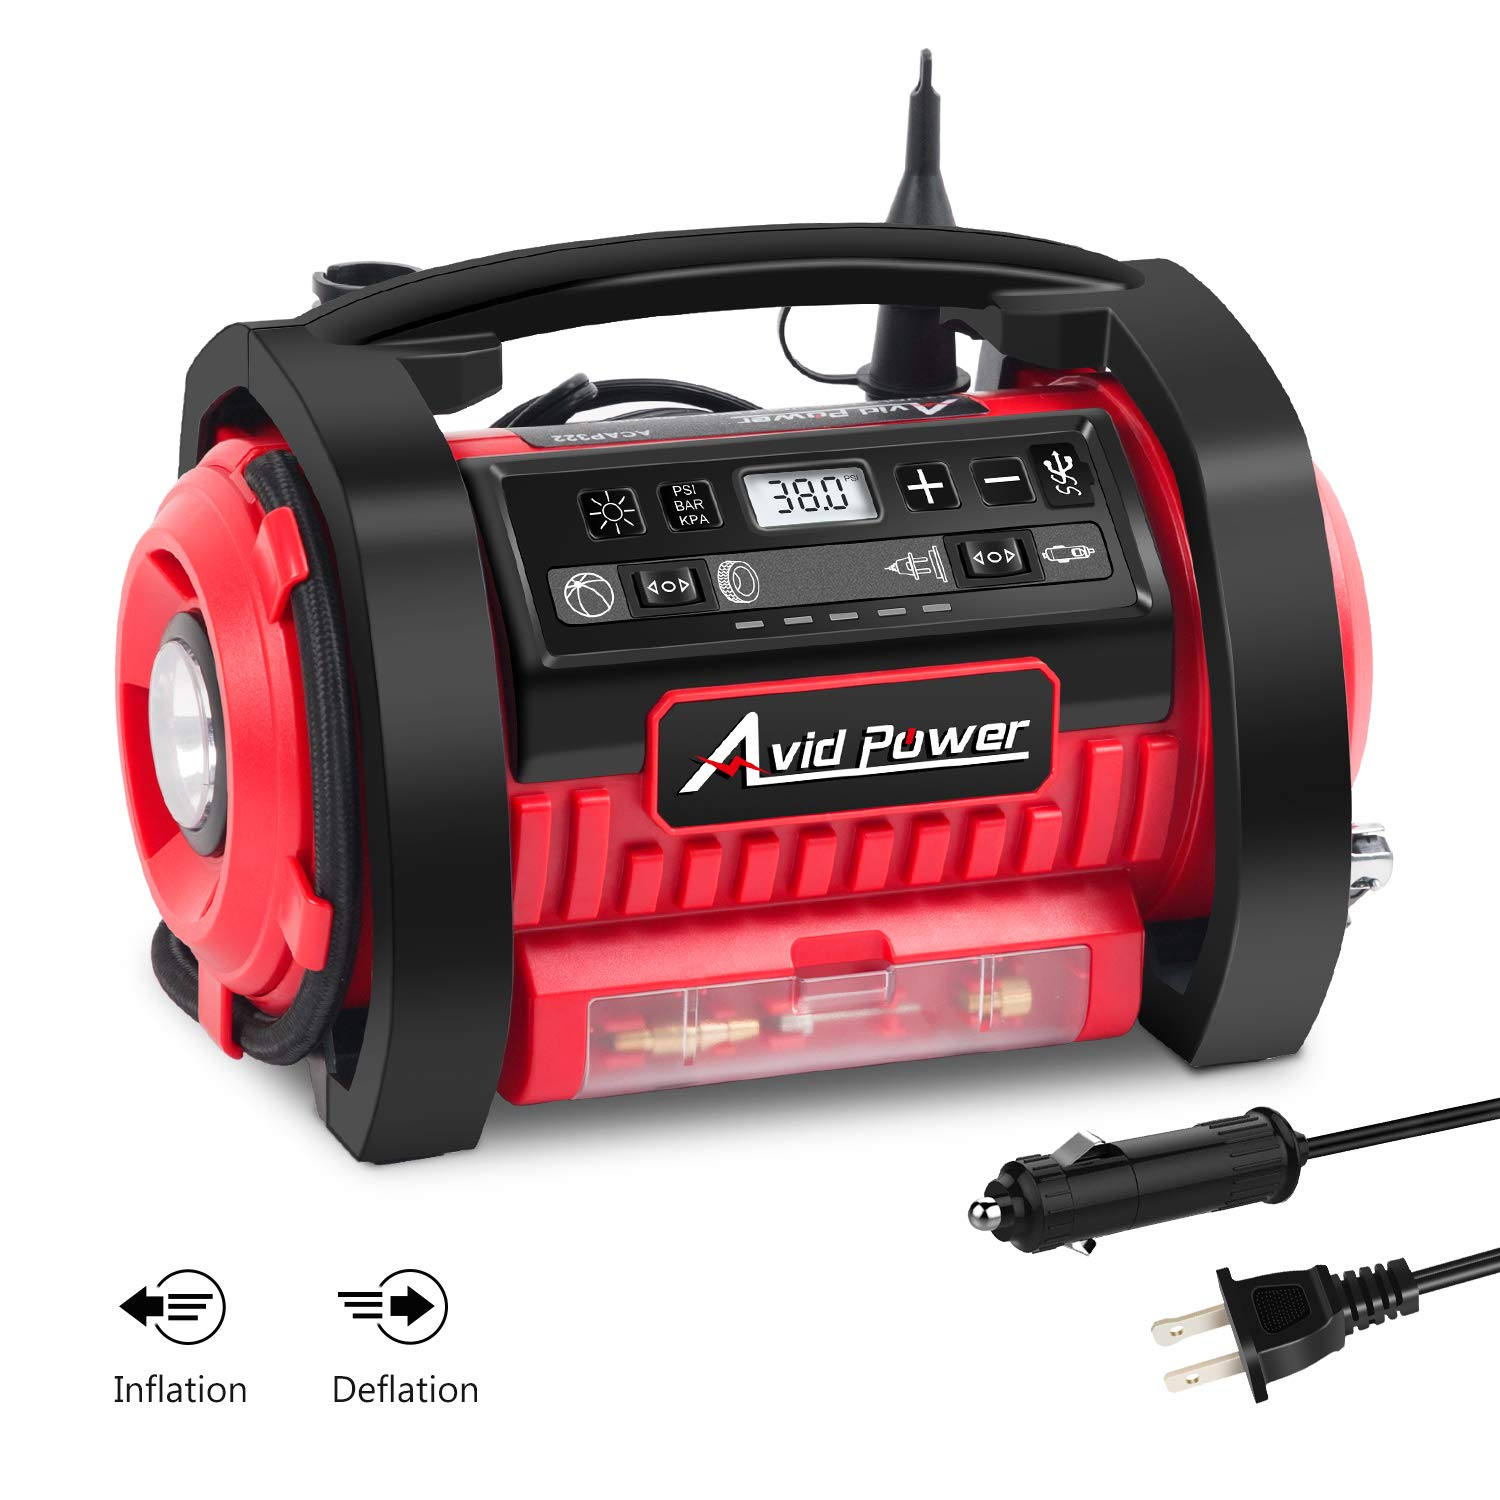 Avid Power 12V DC / 110V AC Dual Power